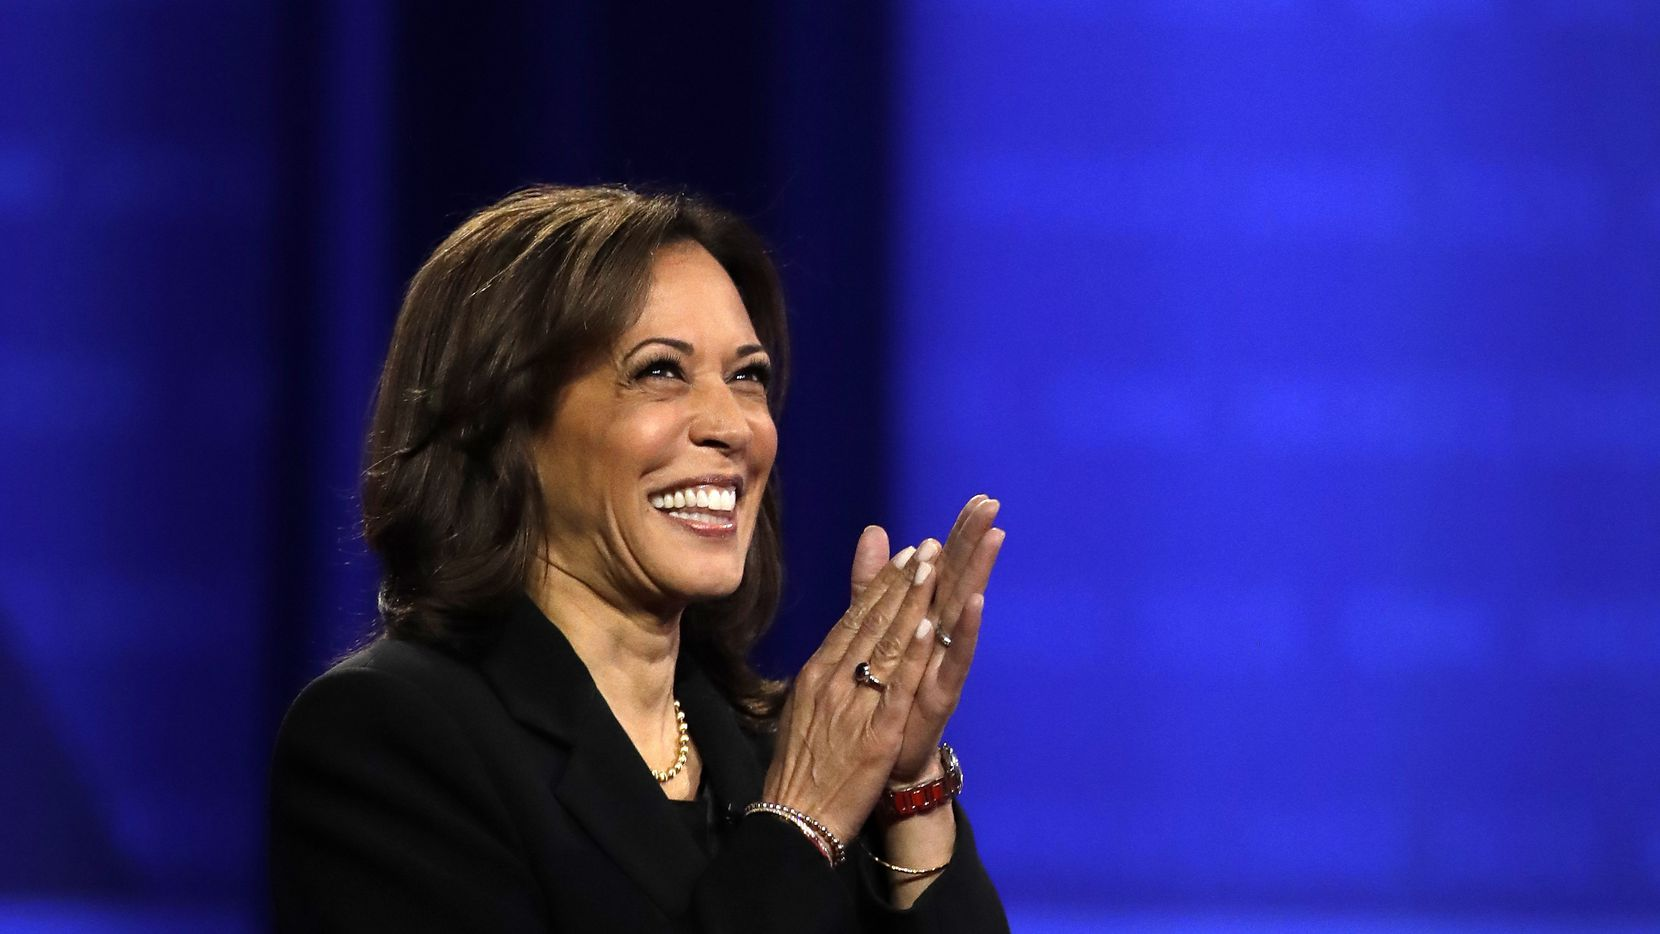 Sen. Kamala Harris, D-Calif., claps as she takes the stage during an October 2019 town hall in Los Angeles.